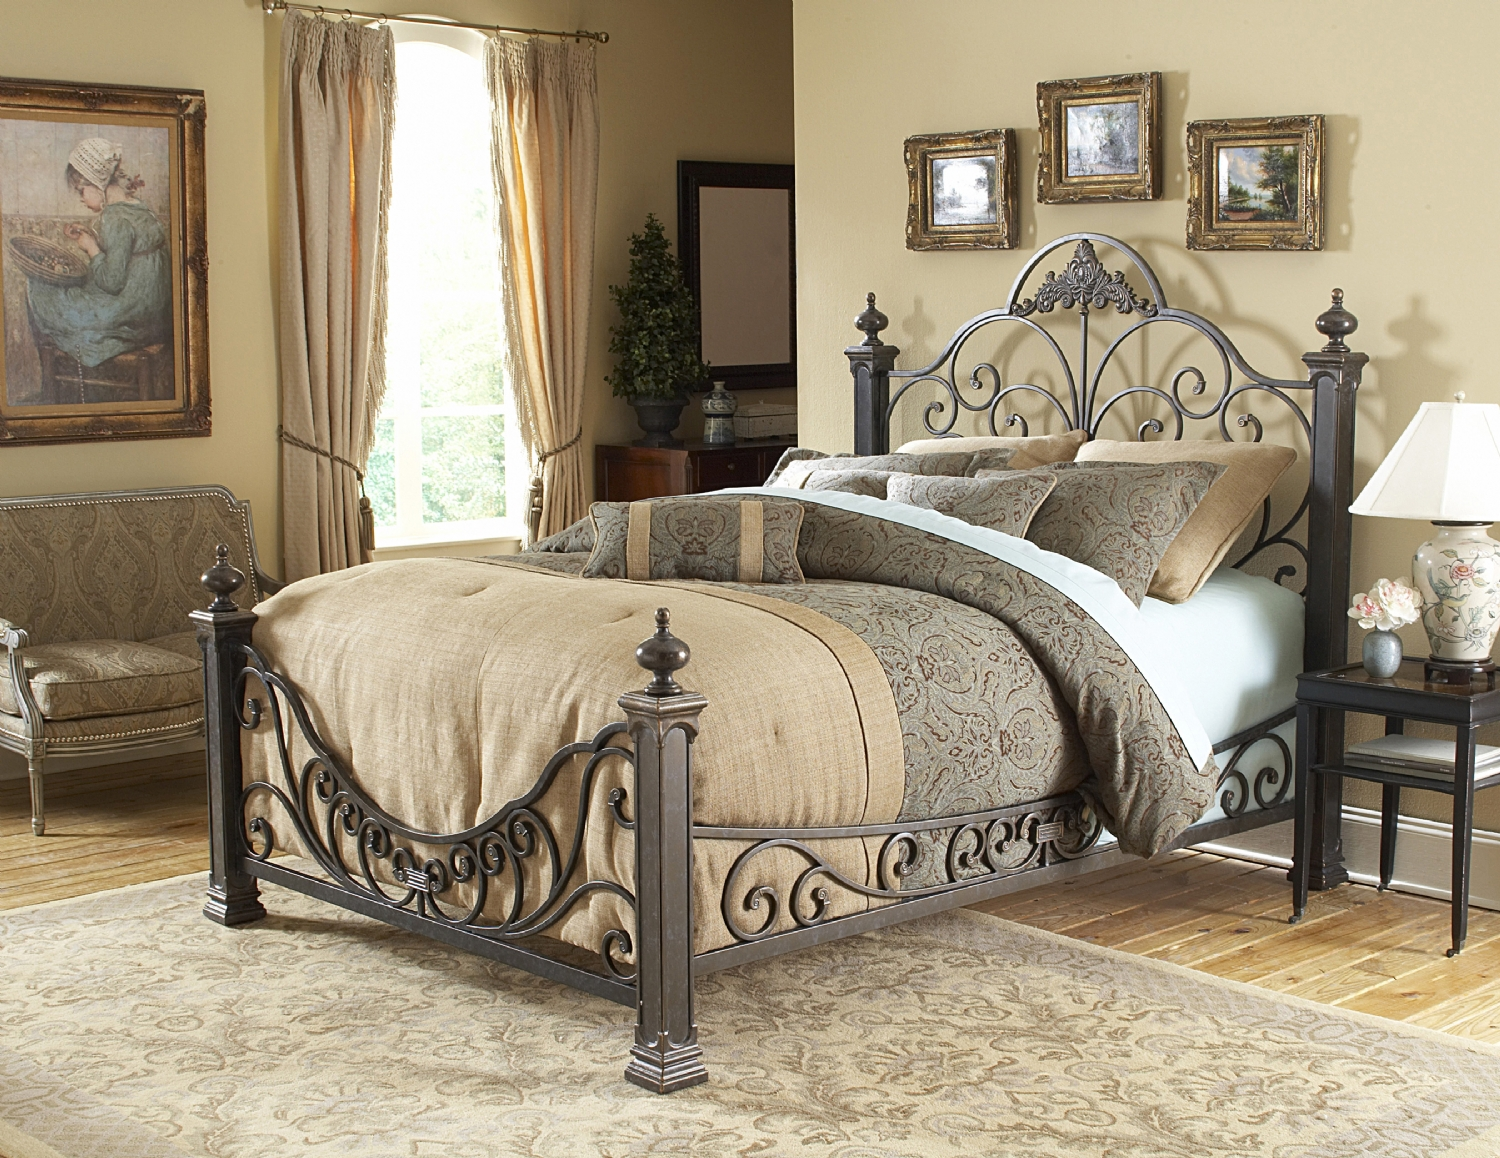 Beds And Beds Bedrooms West Metal Beds